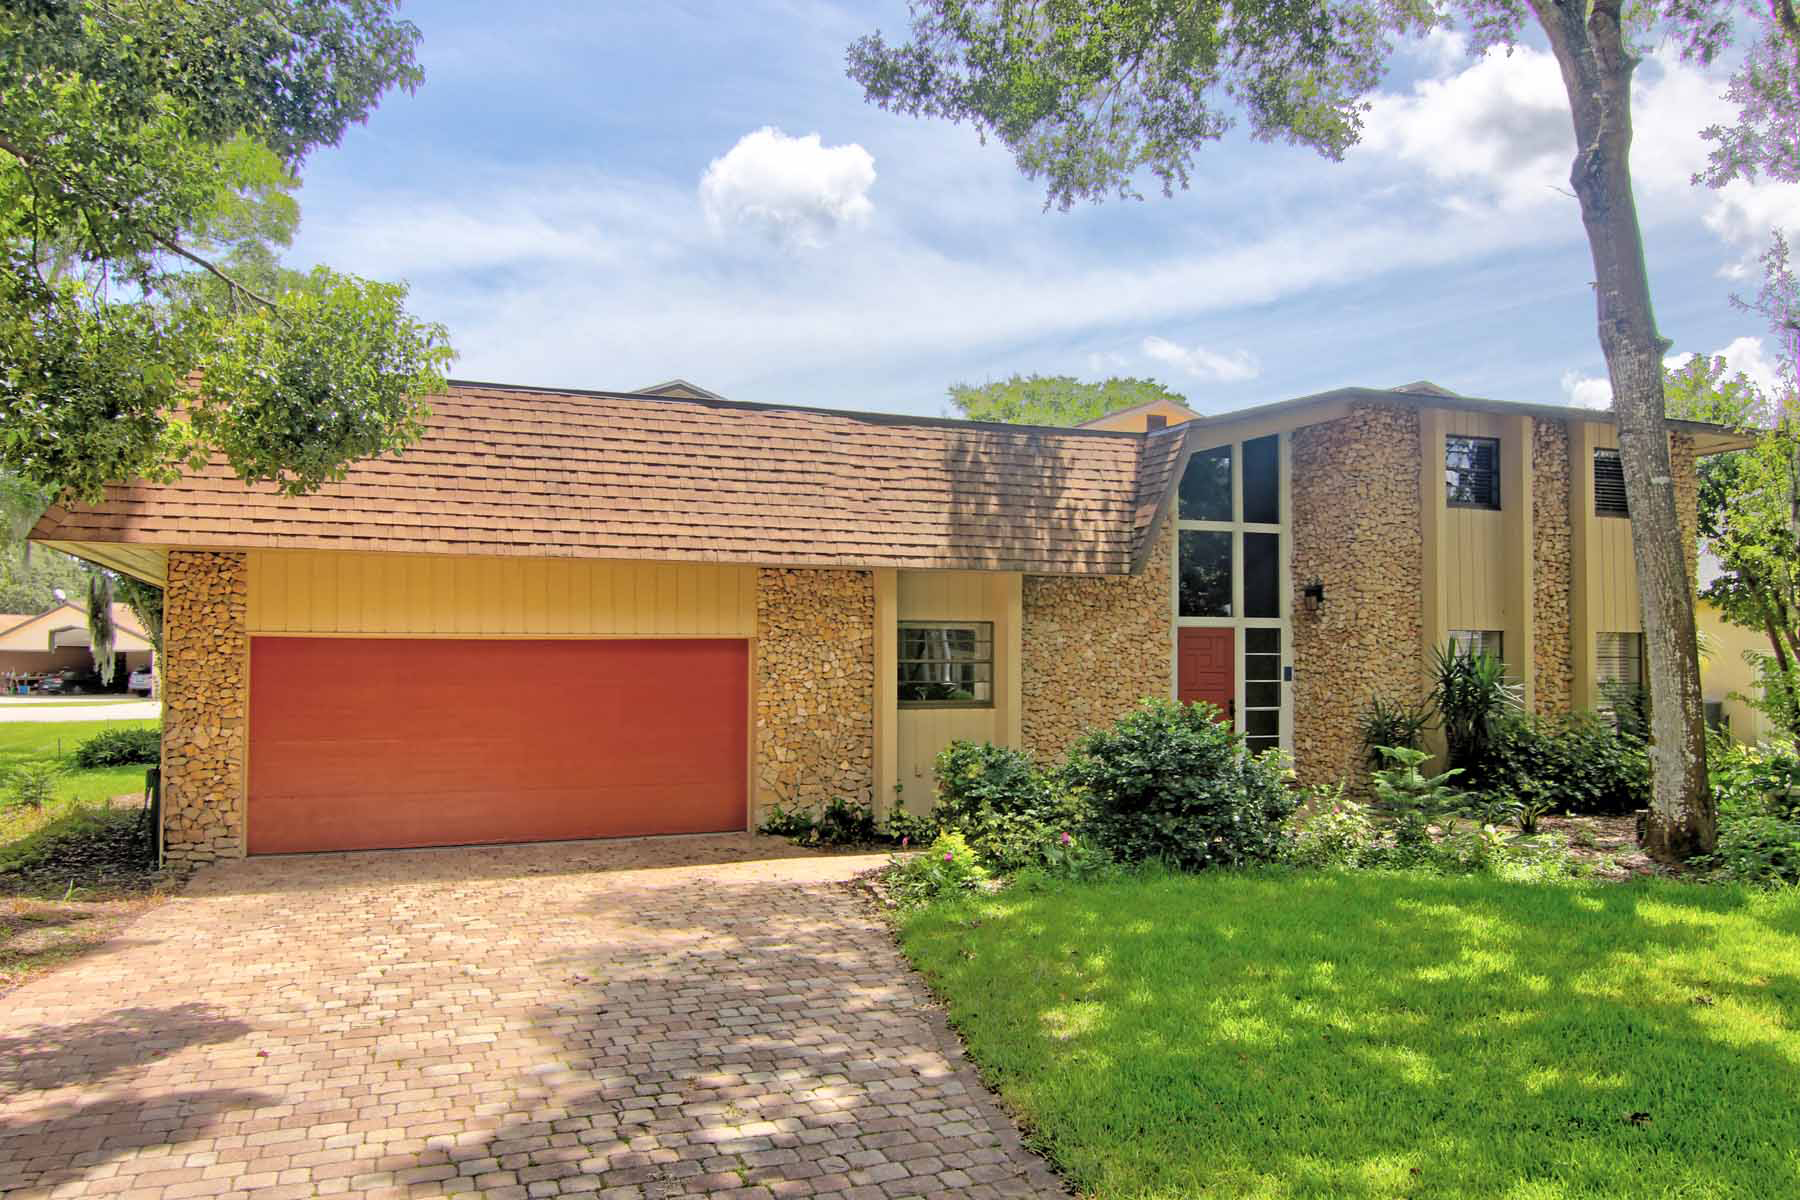 Single Family Home for Sale at 6 Lazy Eight Dr , Port Orange, FL 32128 6 Lazy Eight Dr Port Orange, Florida 32128 United States